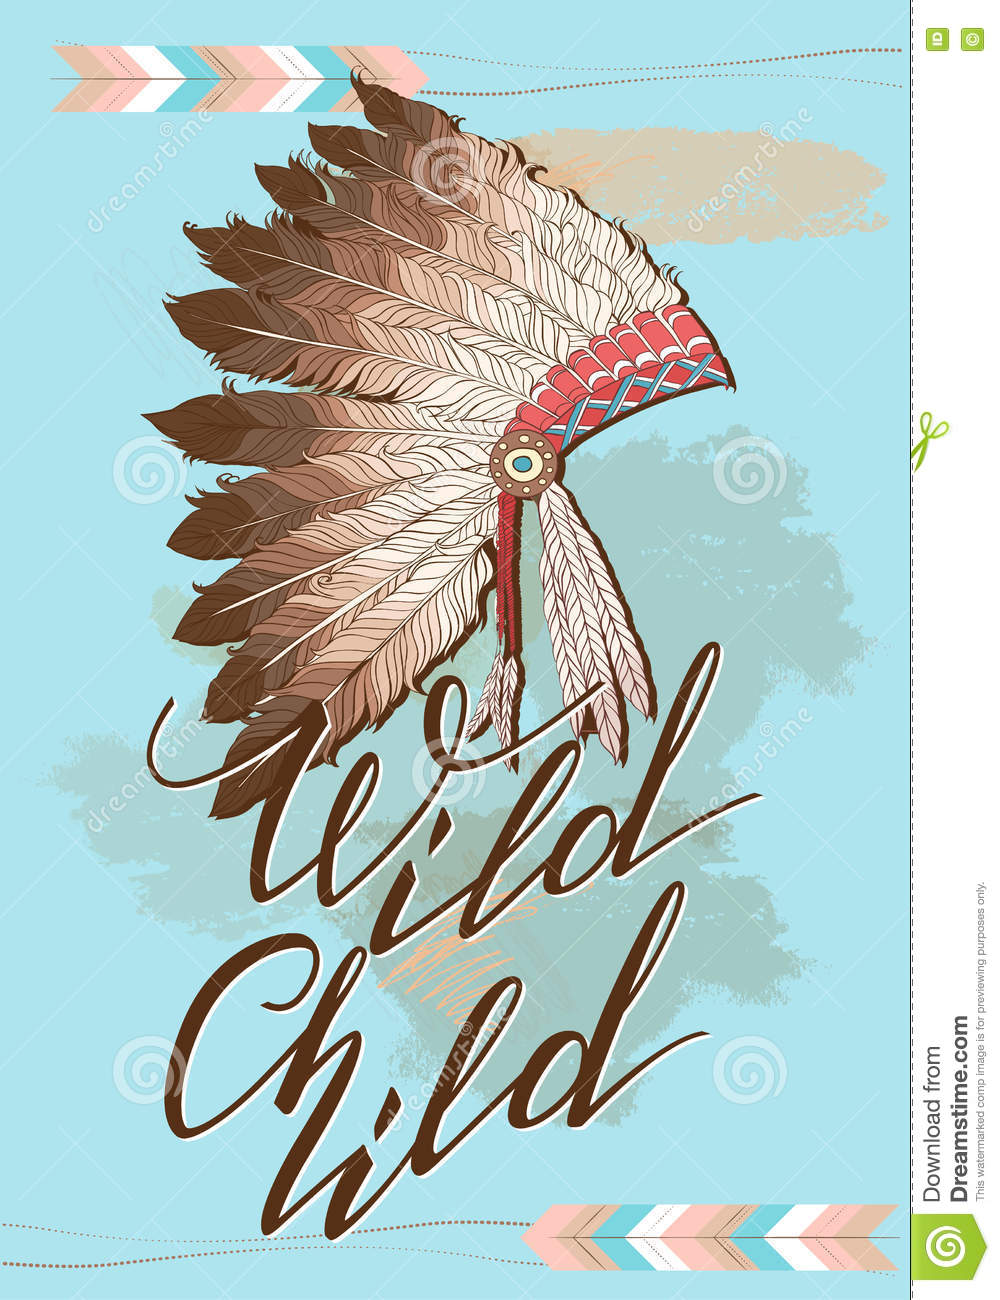 native american indian chief headdress with quote wild childvector color illustration of indian tribal